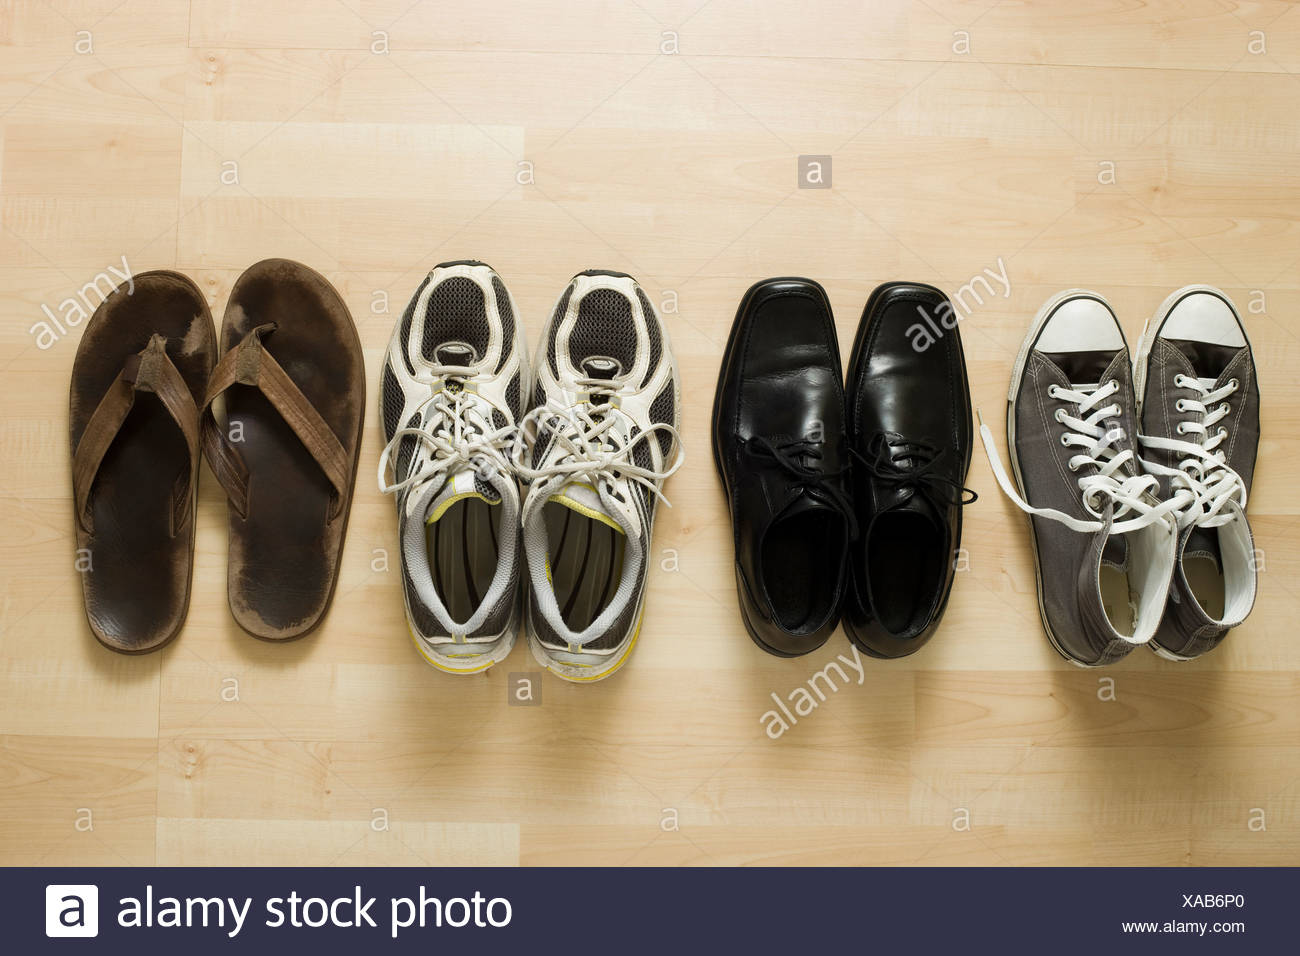 four pairs of shoes - Stock Image